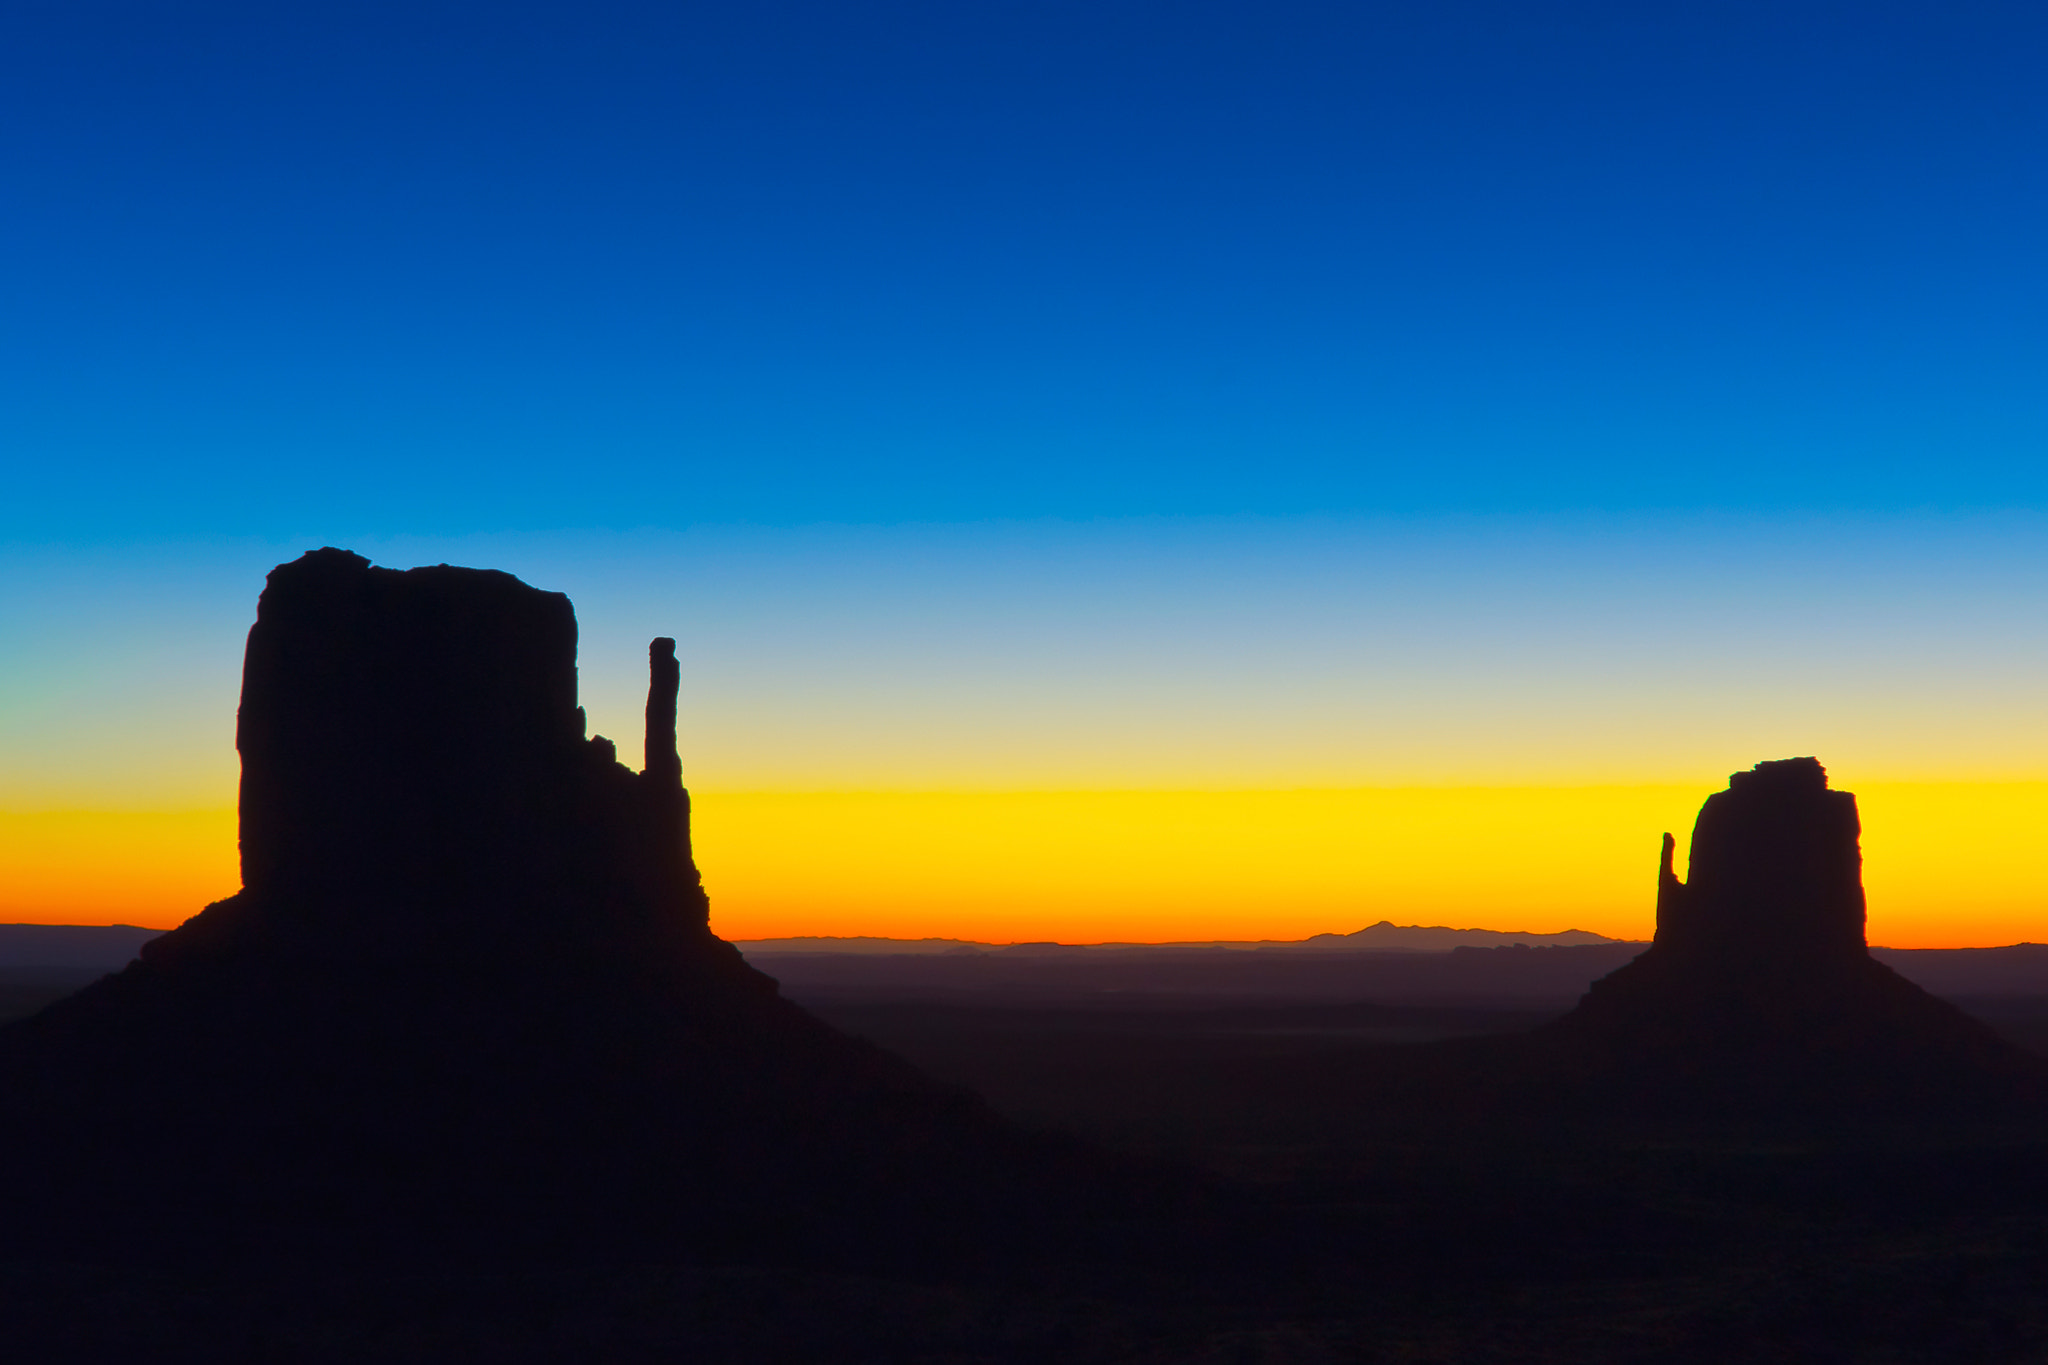 Photograph Monument Valley by Jeroen Stekelenburg on 500px